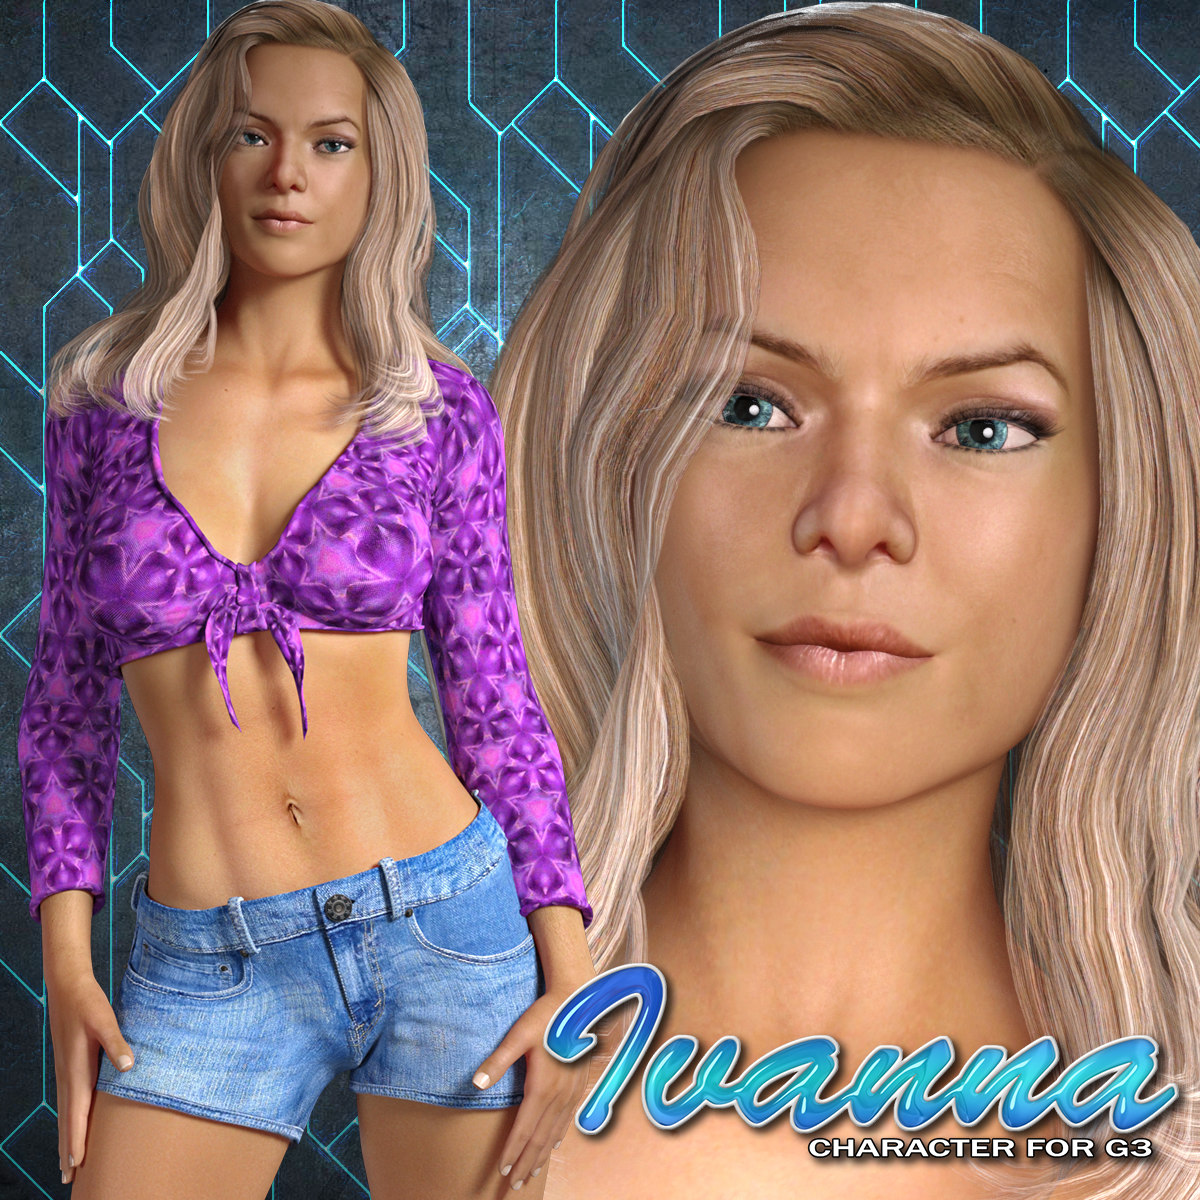 Exnem Ivanna Character for G3 Female